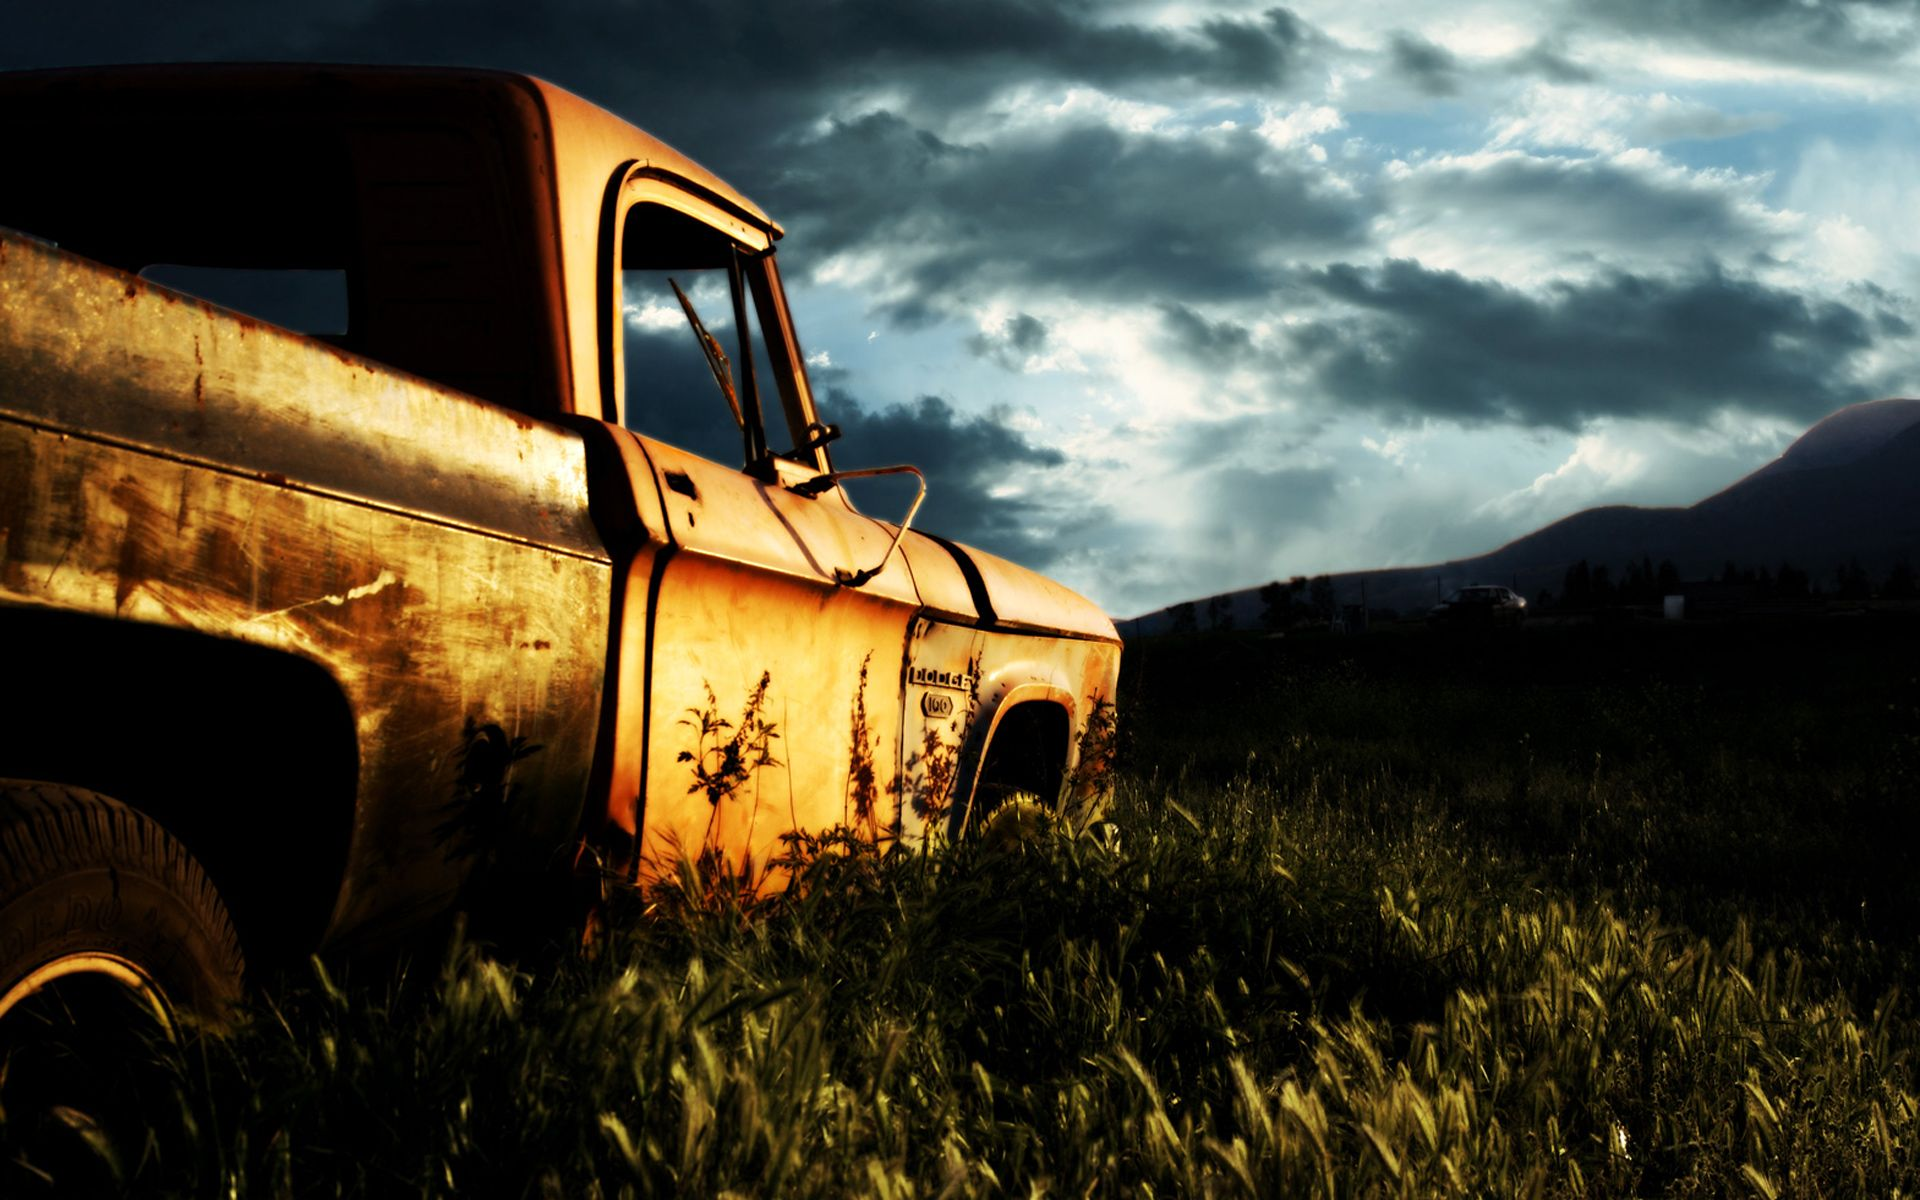 Rusty Dodge Car Wide Jpg 1920 1200 Car Wallpapers Amazing Nature Photos Cool Backgrounds Wallpapers